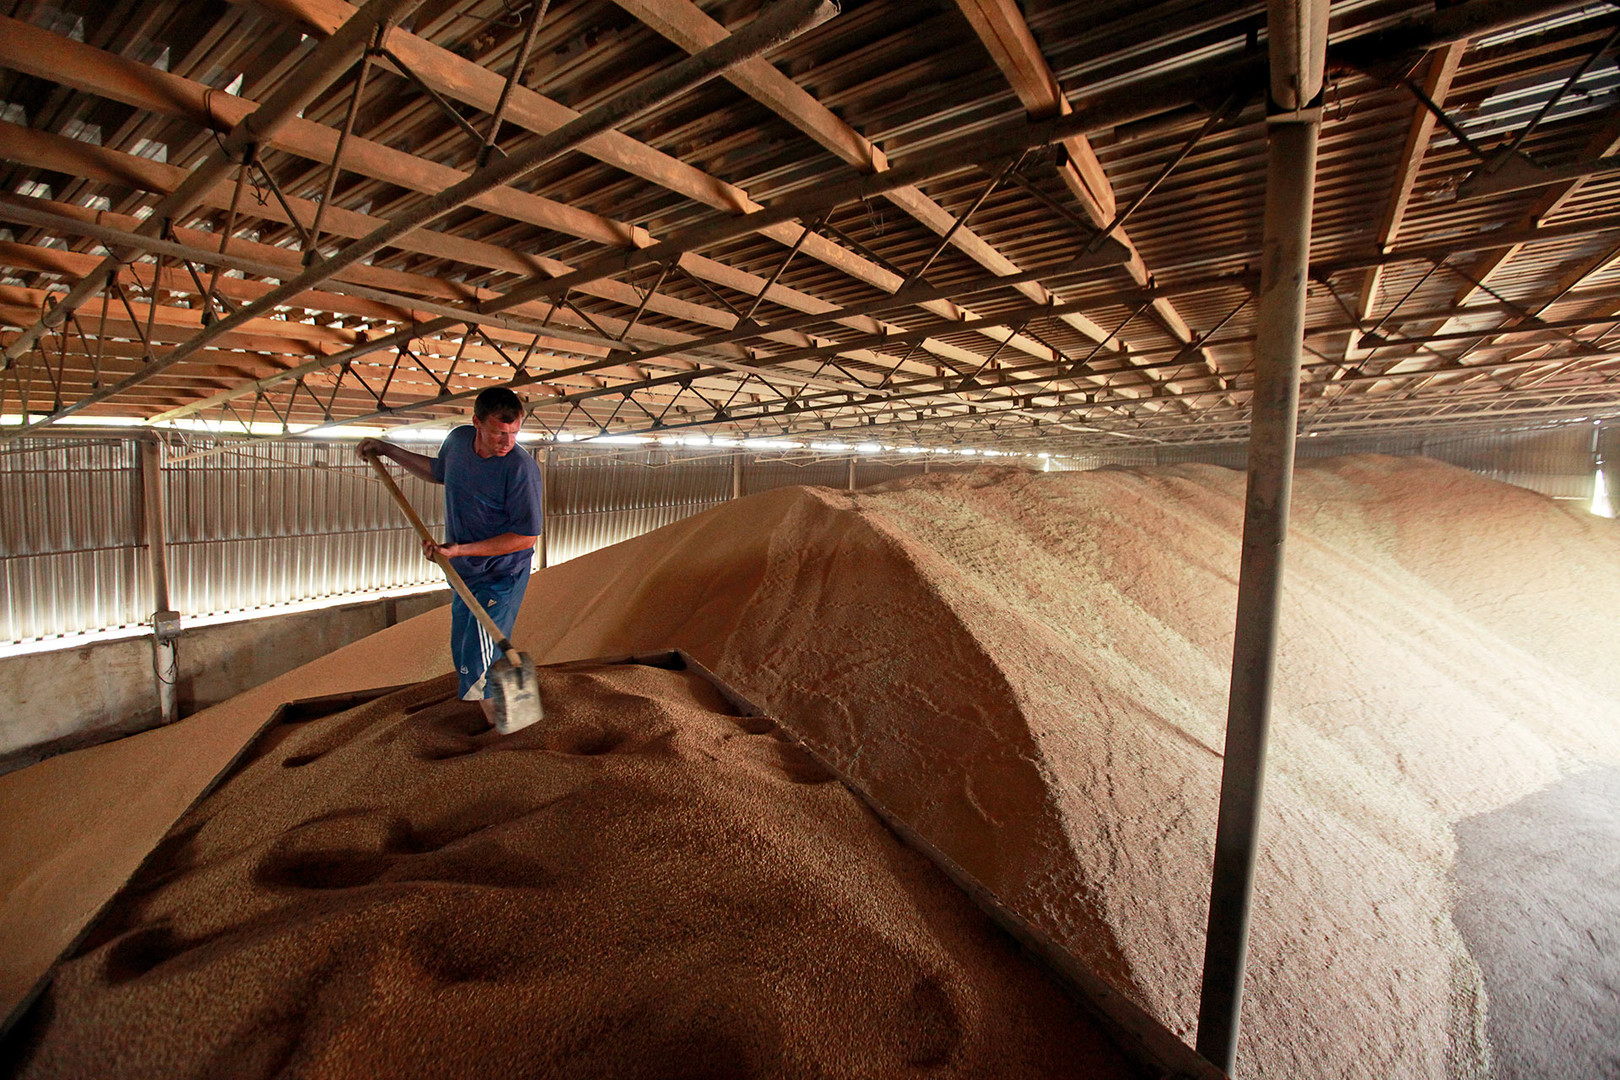 A worker shovels grain in a warehouse in the the village of Konstantinovo, some 60 km (37 miles) from the Southern Russian city of Stavropol.